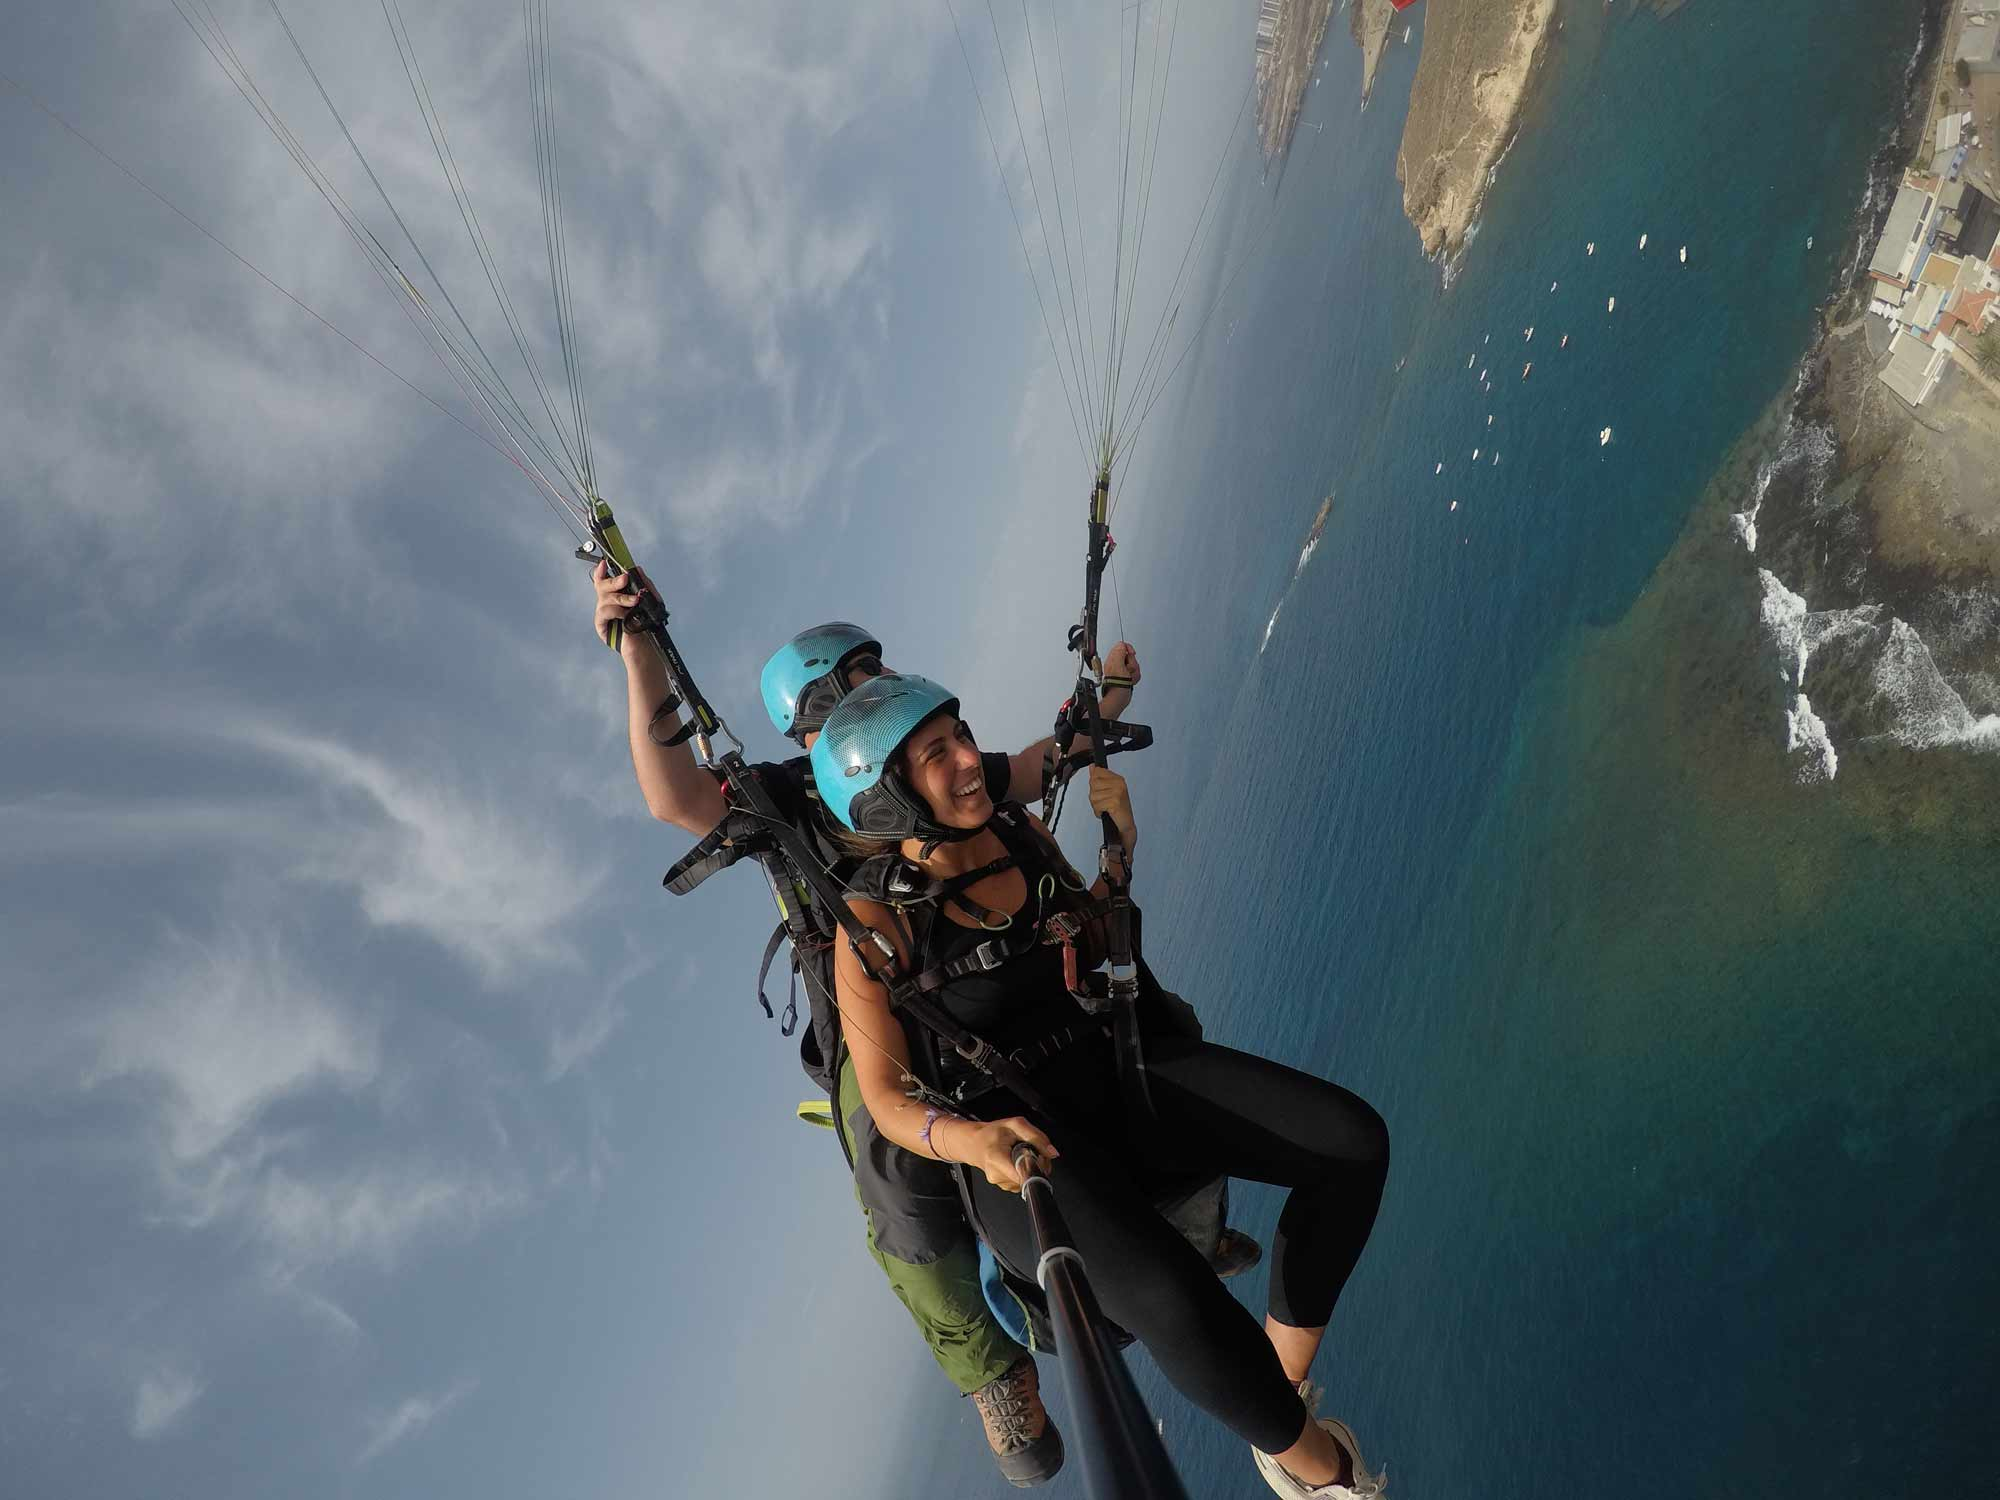 Paragliding Tandem Flight in Costa Adeje